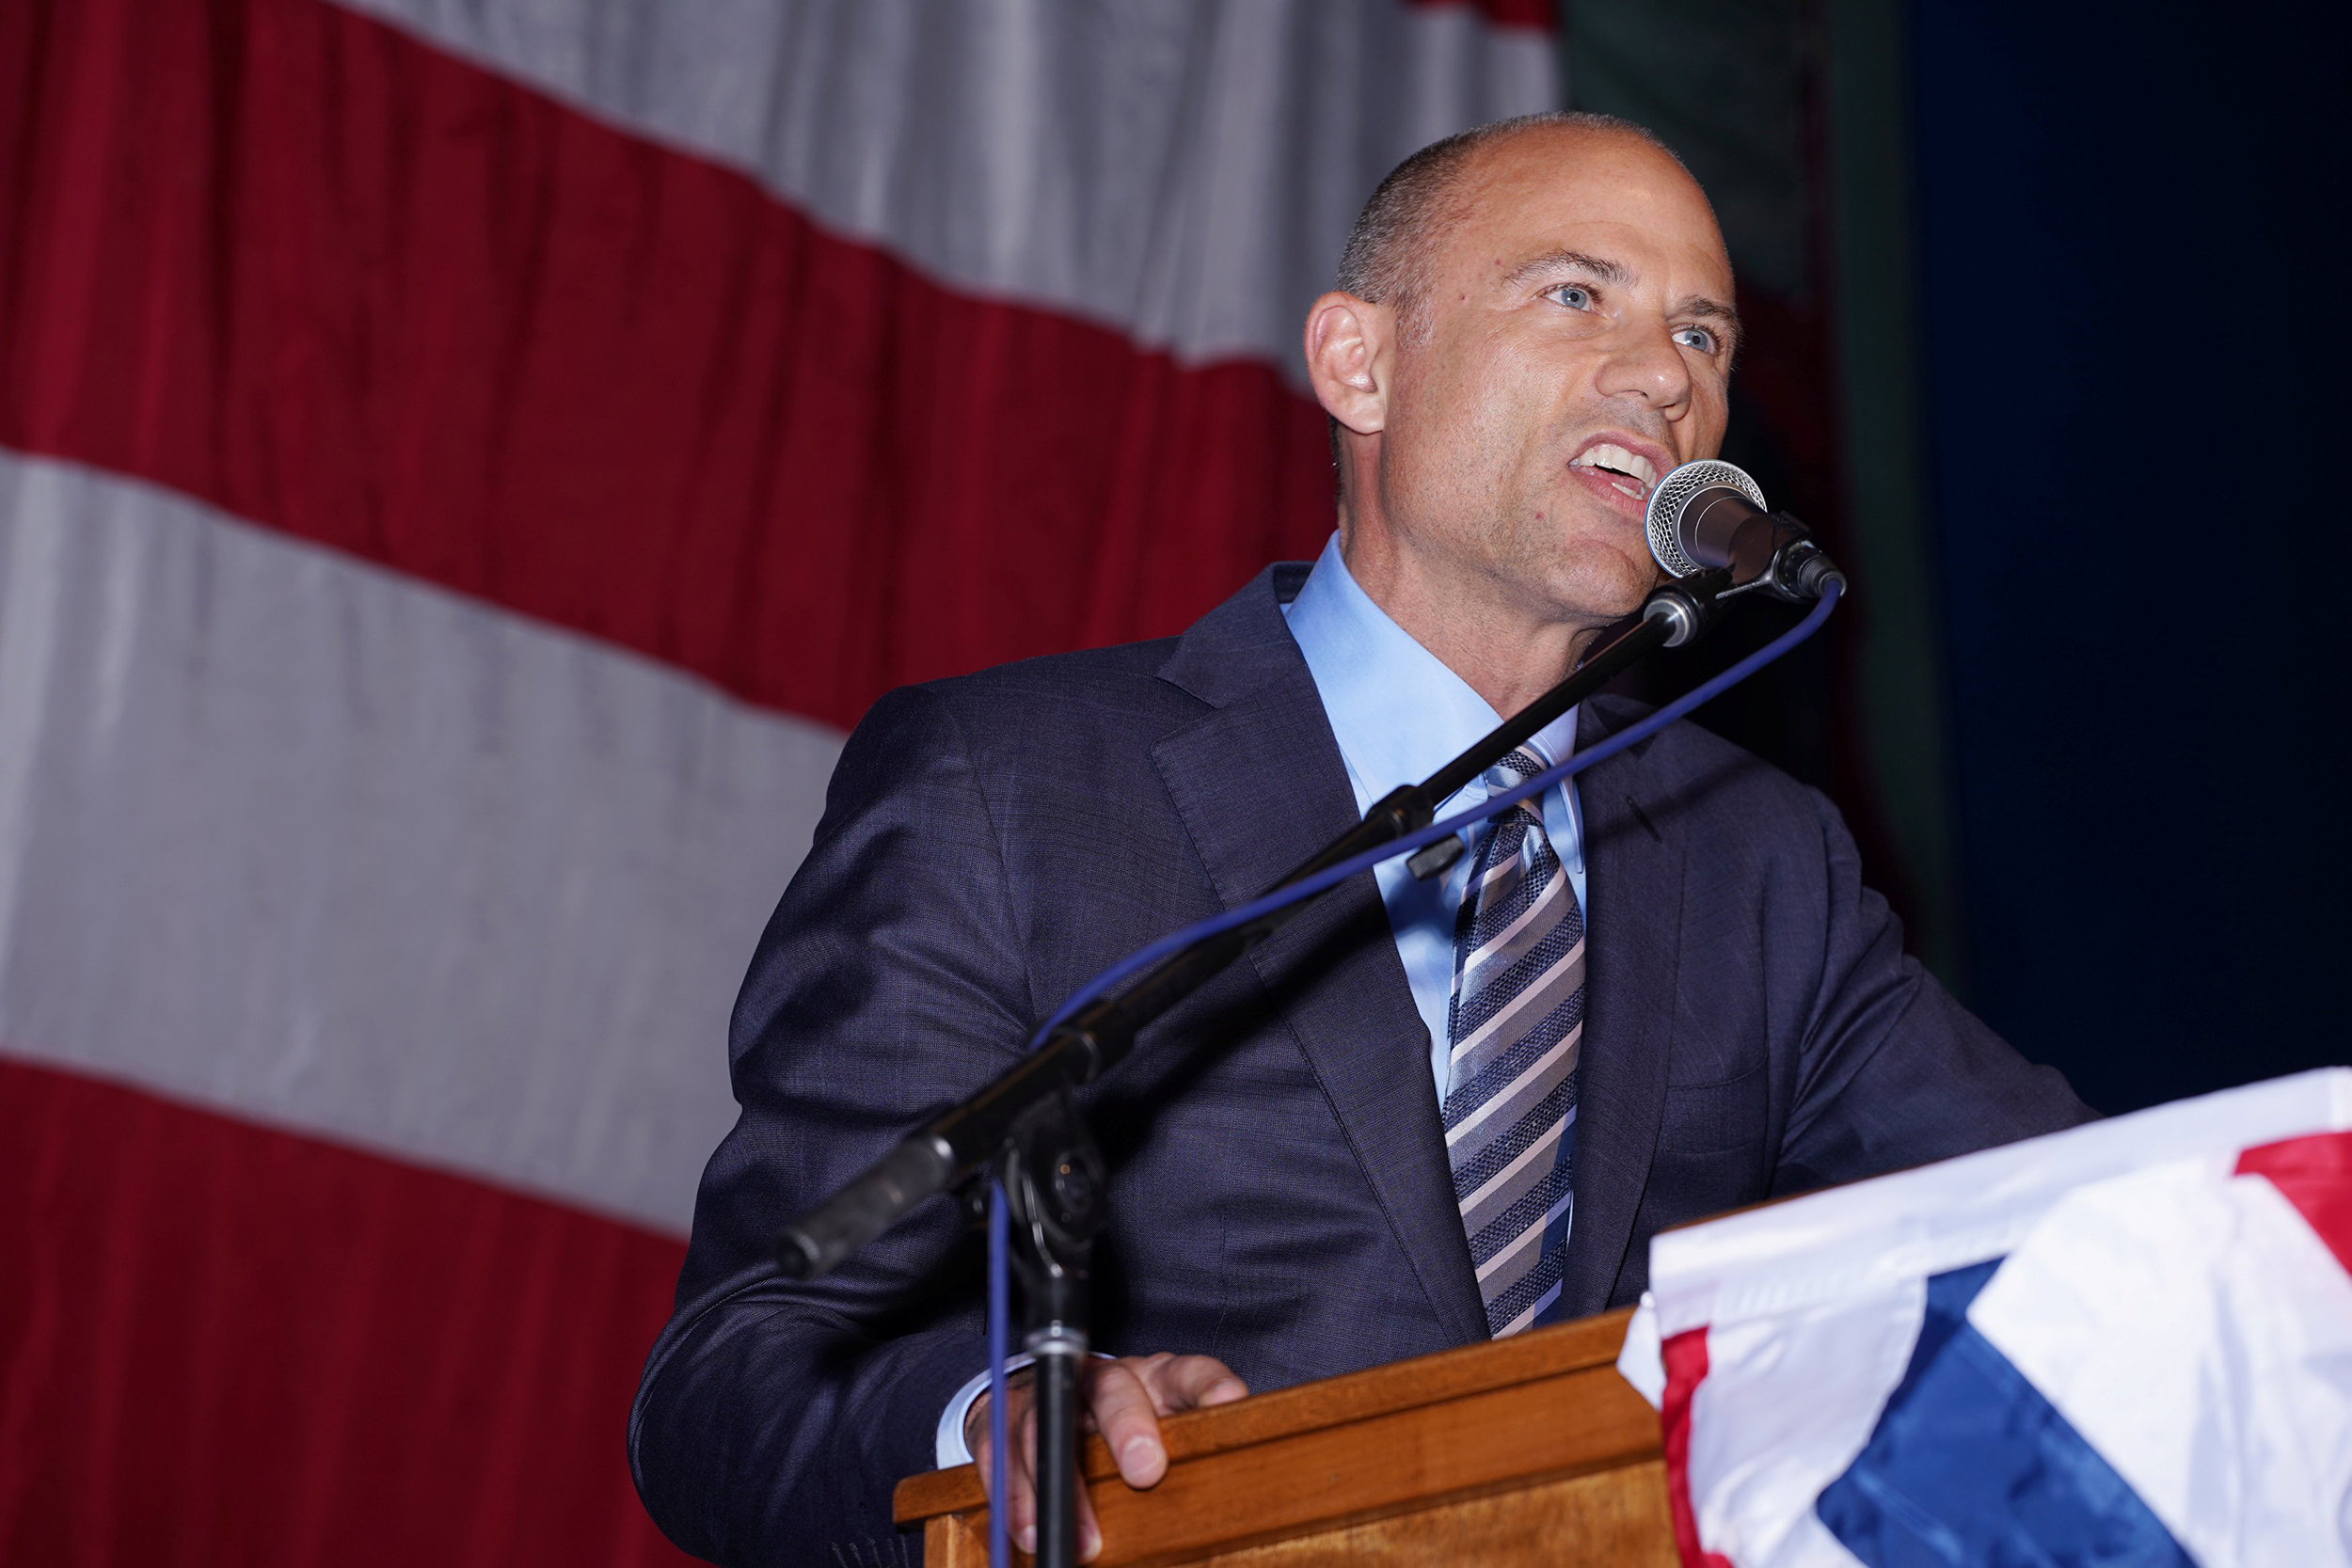 Stormy-Daniels'-lawyer,-considering-presidential-run,-charts-path-as-a-fighter